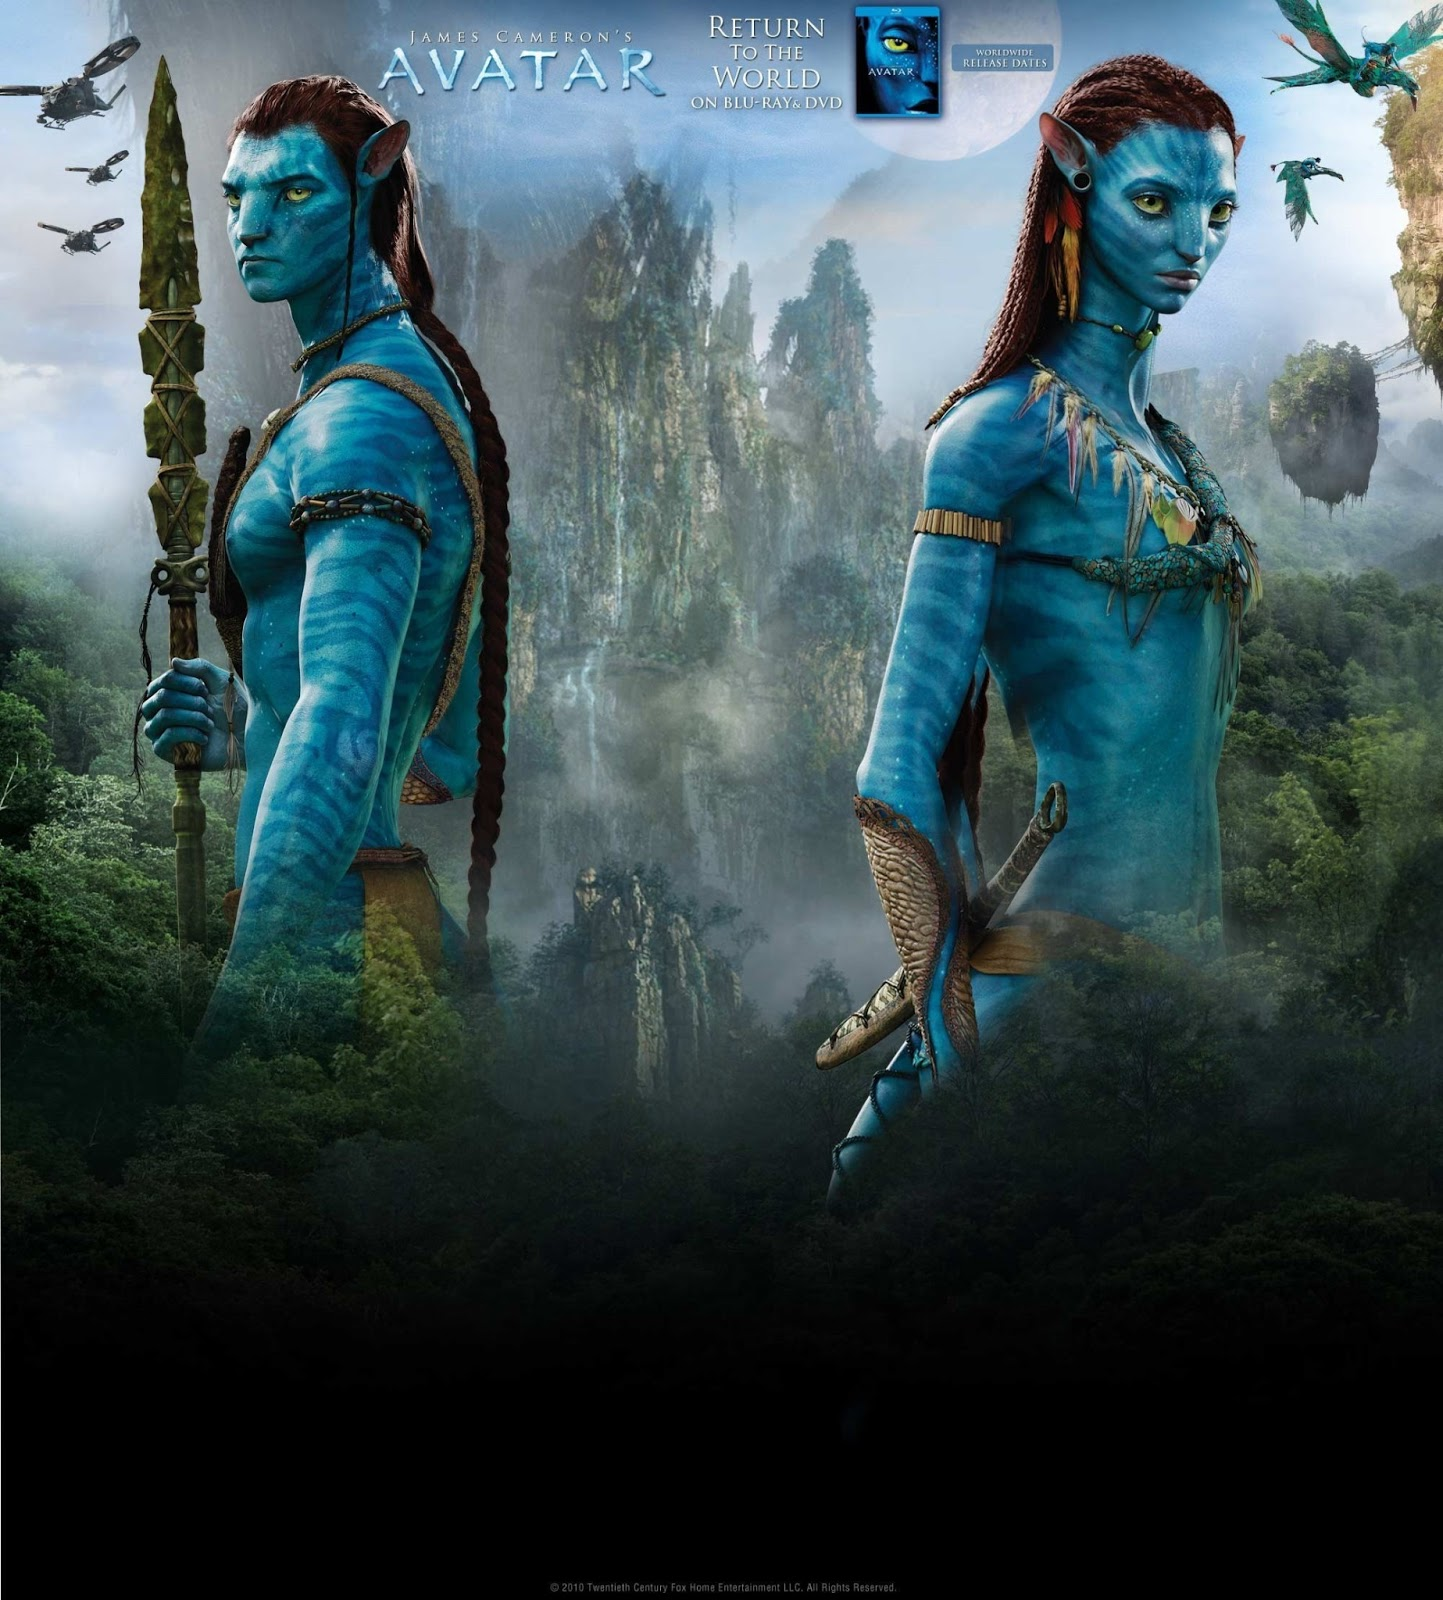 Pictures From Avatar: Só Torrents Softwares Games Filmes: Avatar Filme Completo